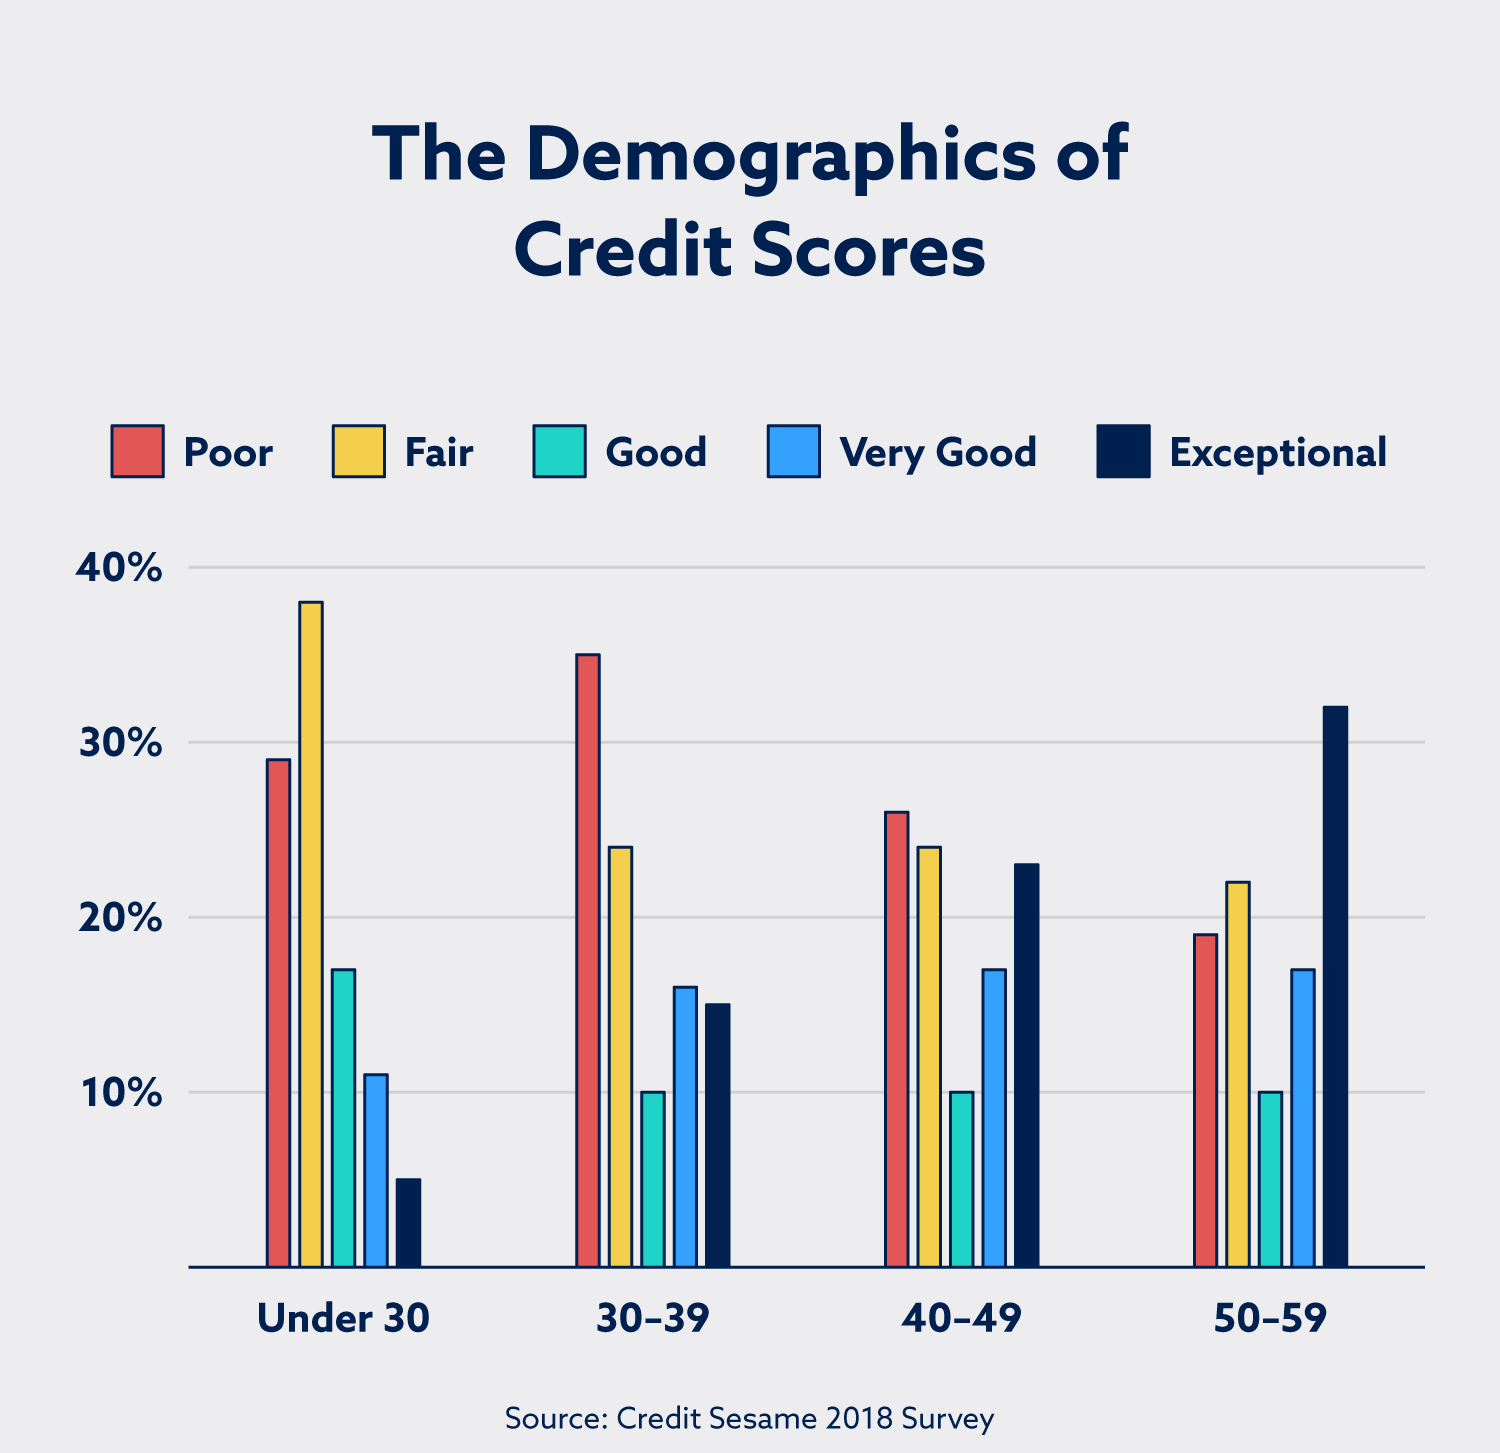 The demographics of credit scores based on age.